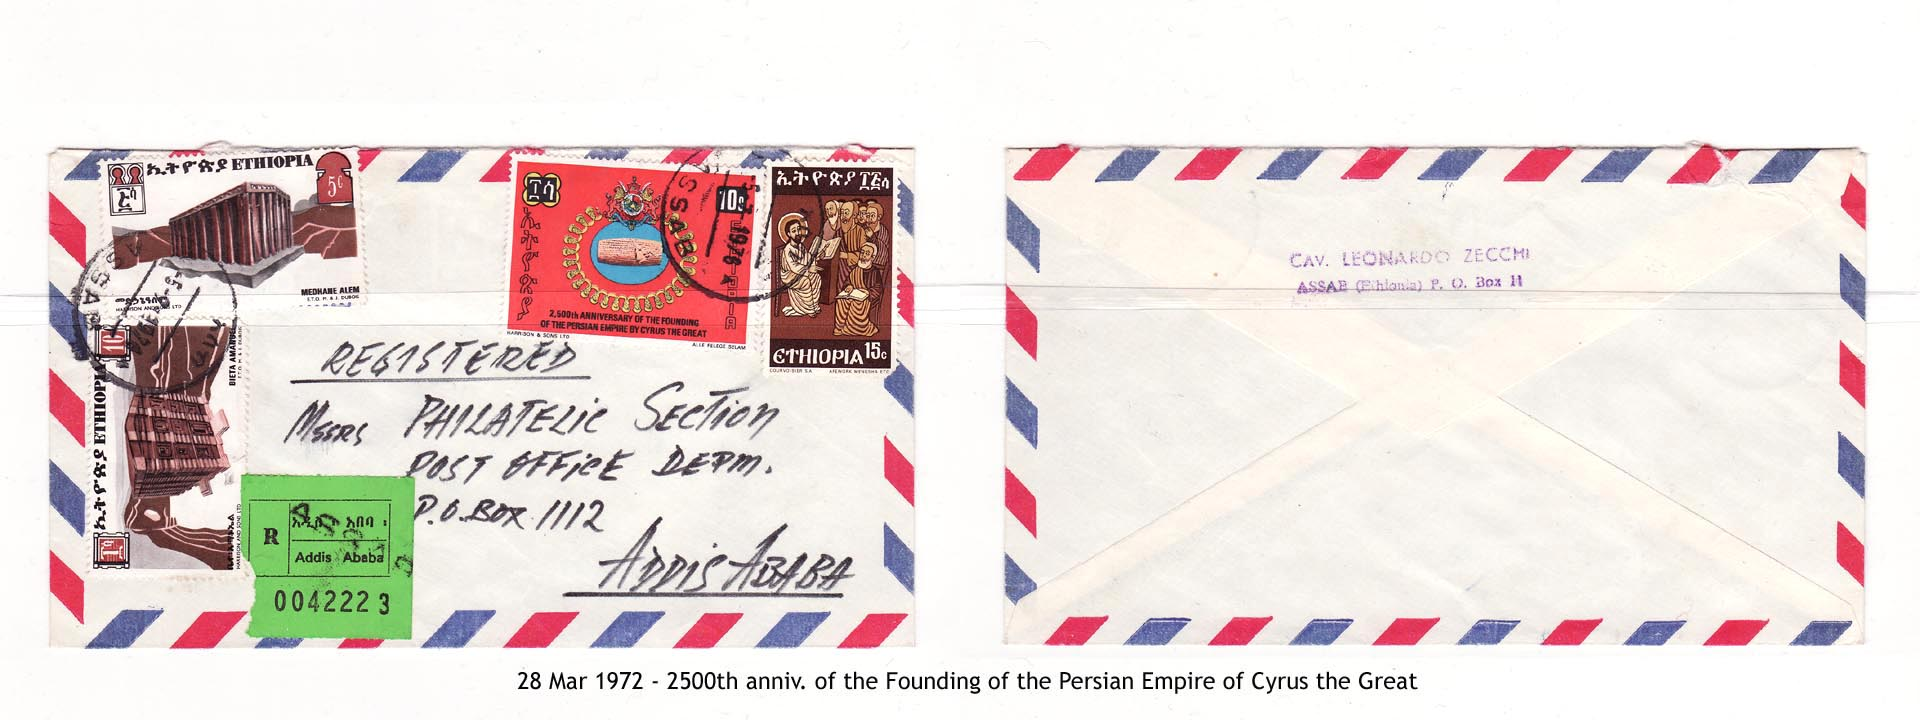 19720328 - 2500th anniv. of the Founding of the Persian Empire of Cyrus the Great